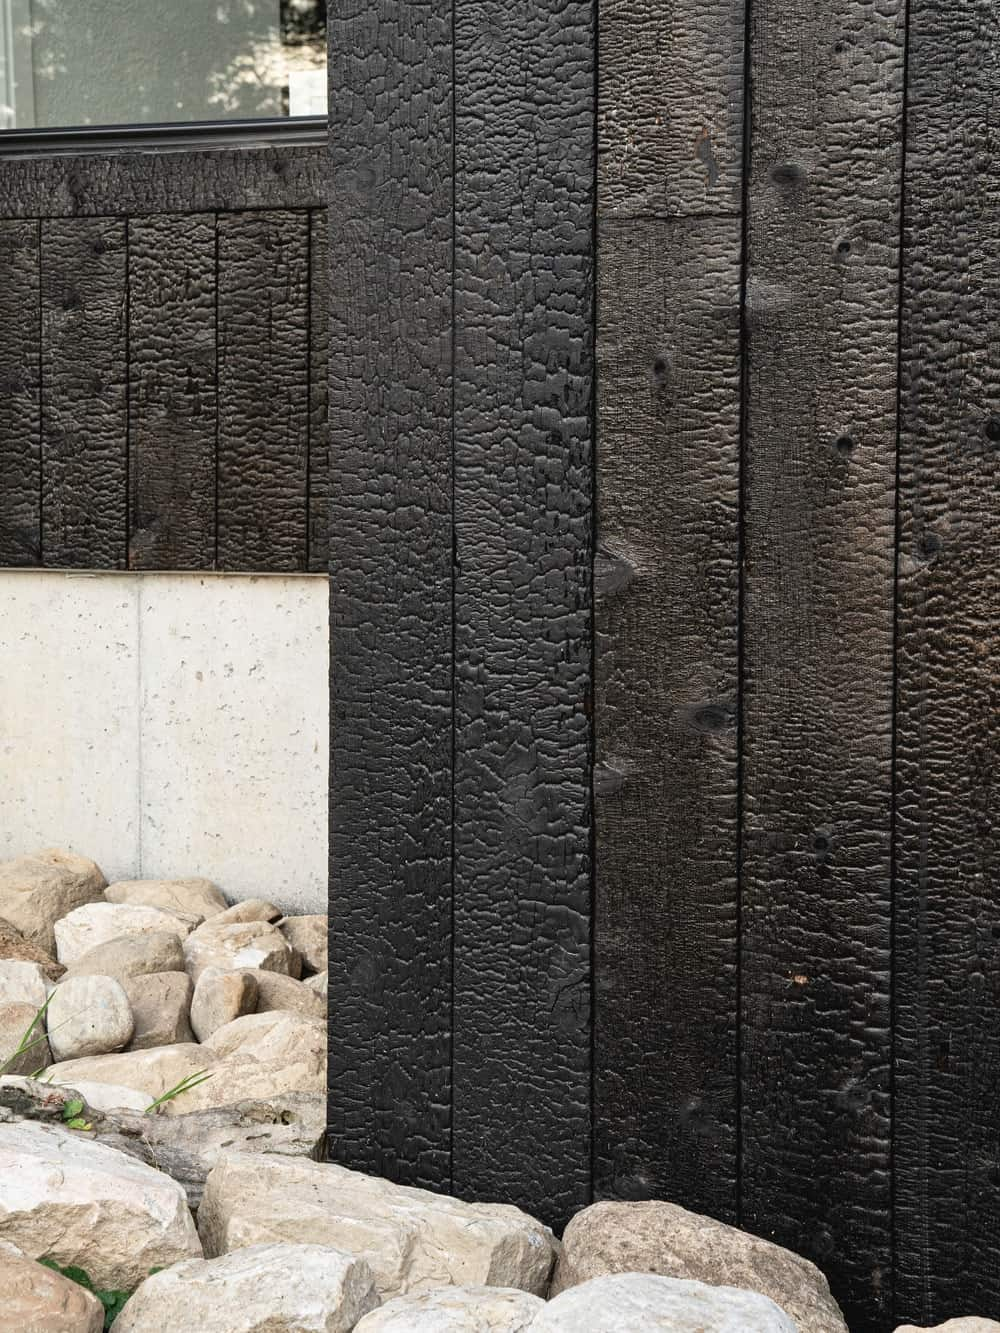 This is a close look at the textured wooden dark exterior walls of the house extension.